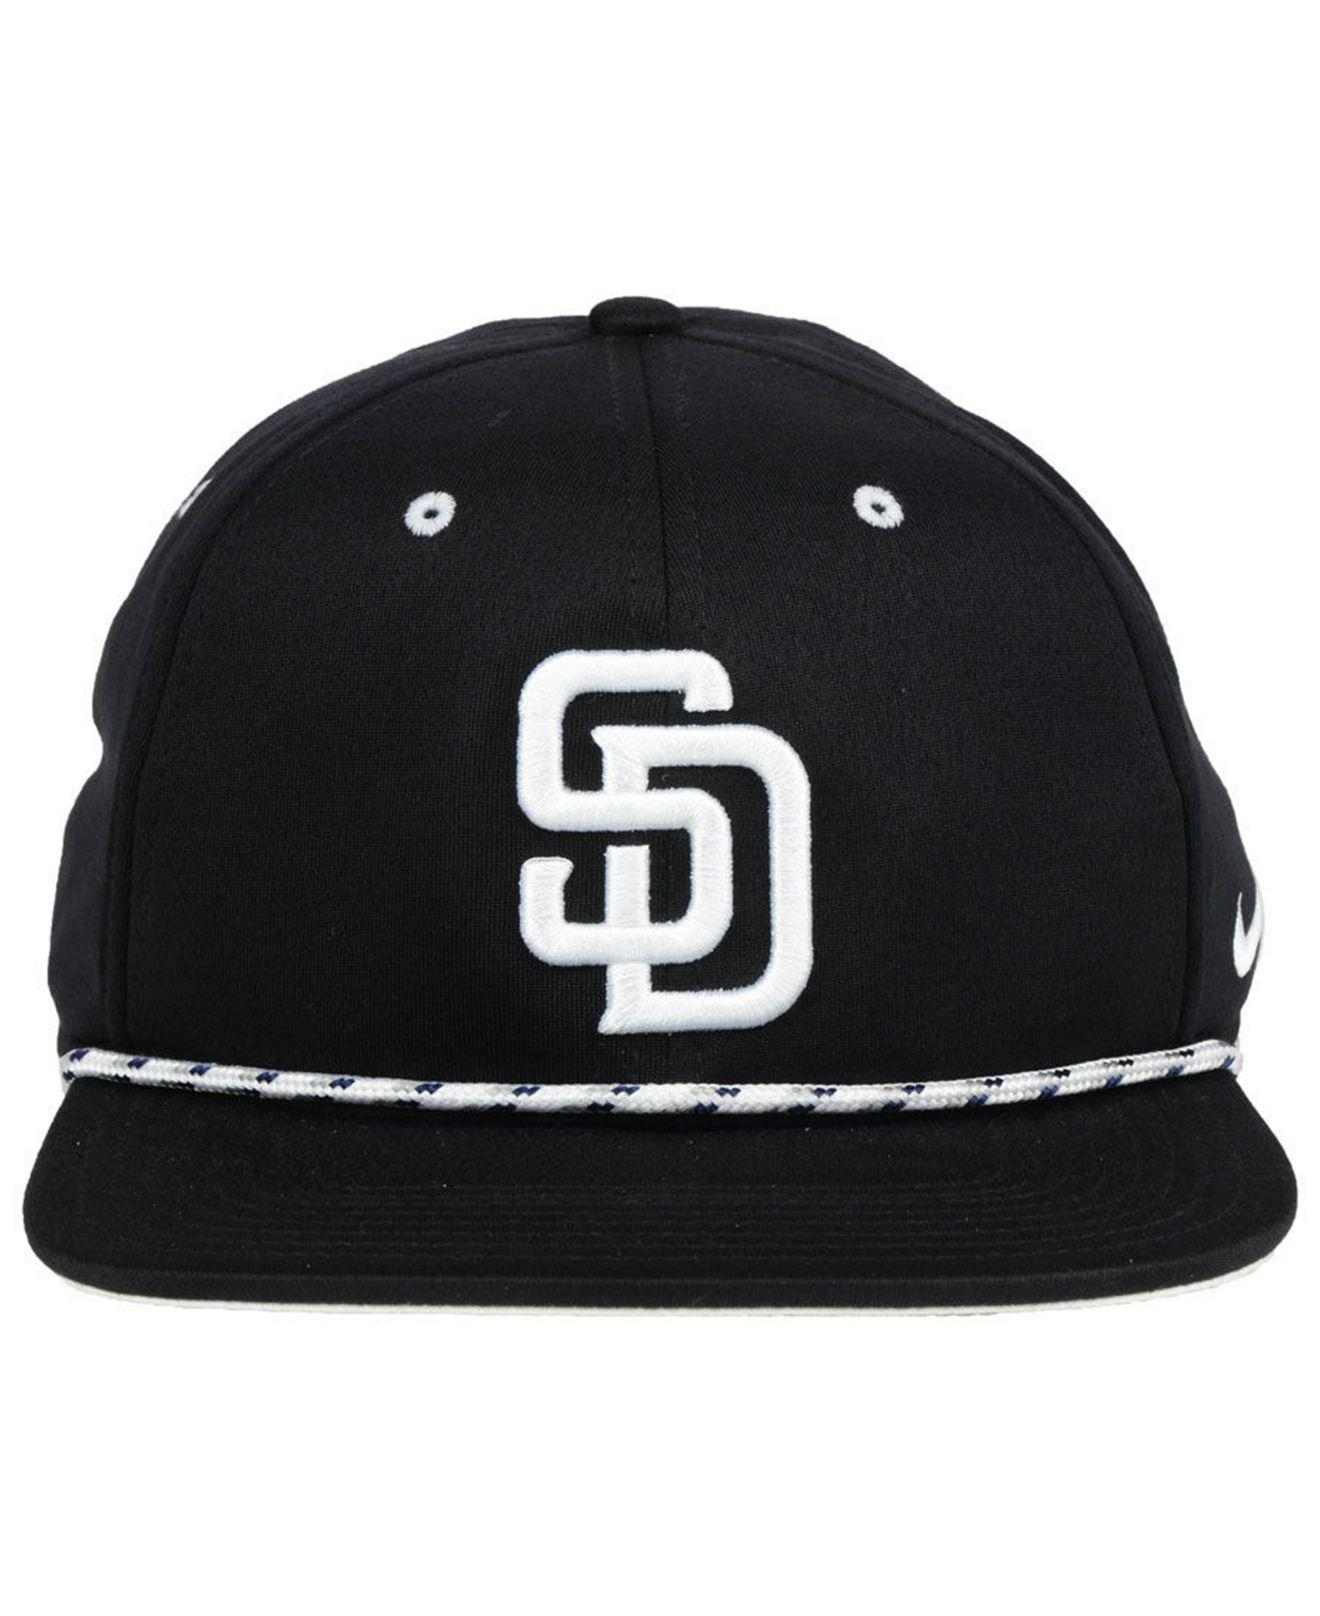 b0d522feb75 coupon new era 9fifty san diego padres quotestablisherquot snapback hat  camo black b33e9 cccae  reduced lyst nike san diego padres string bill  snapback cap ...